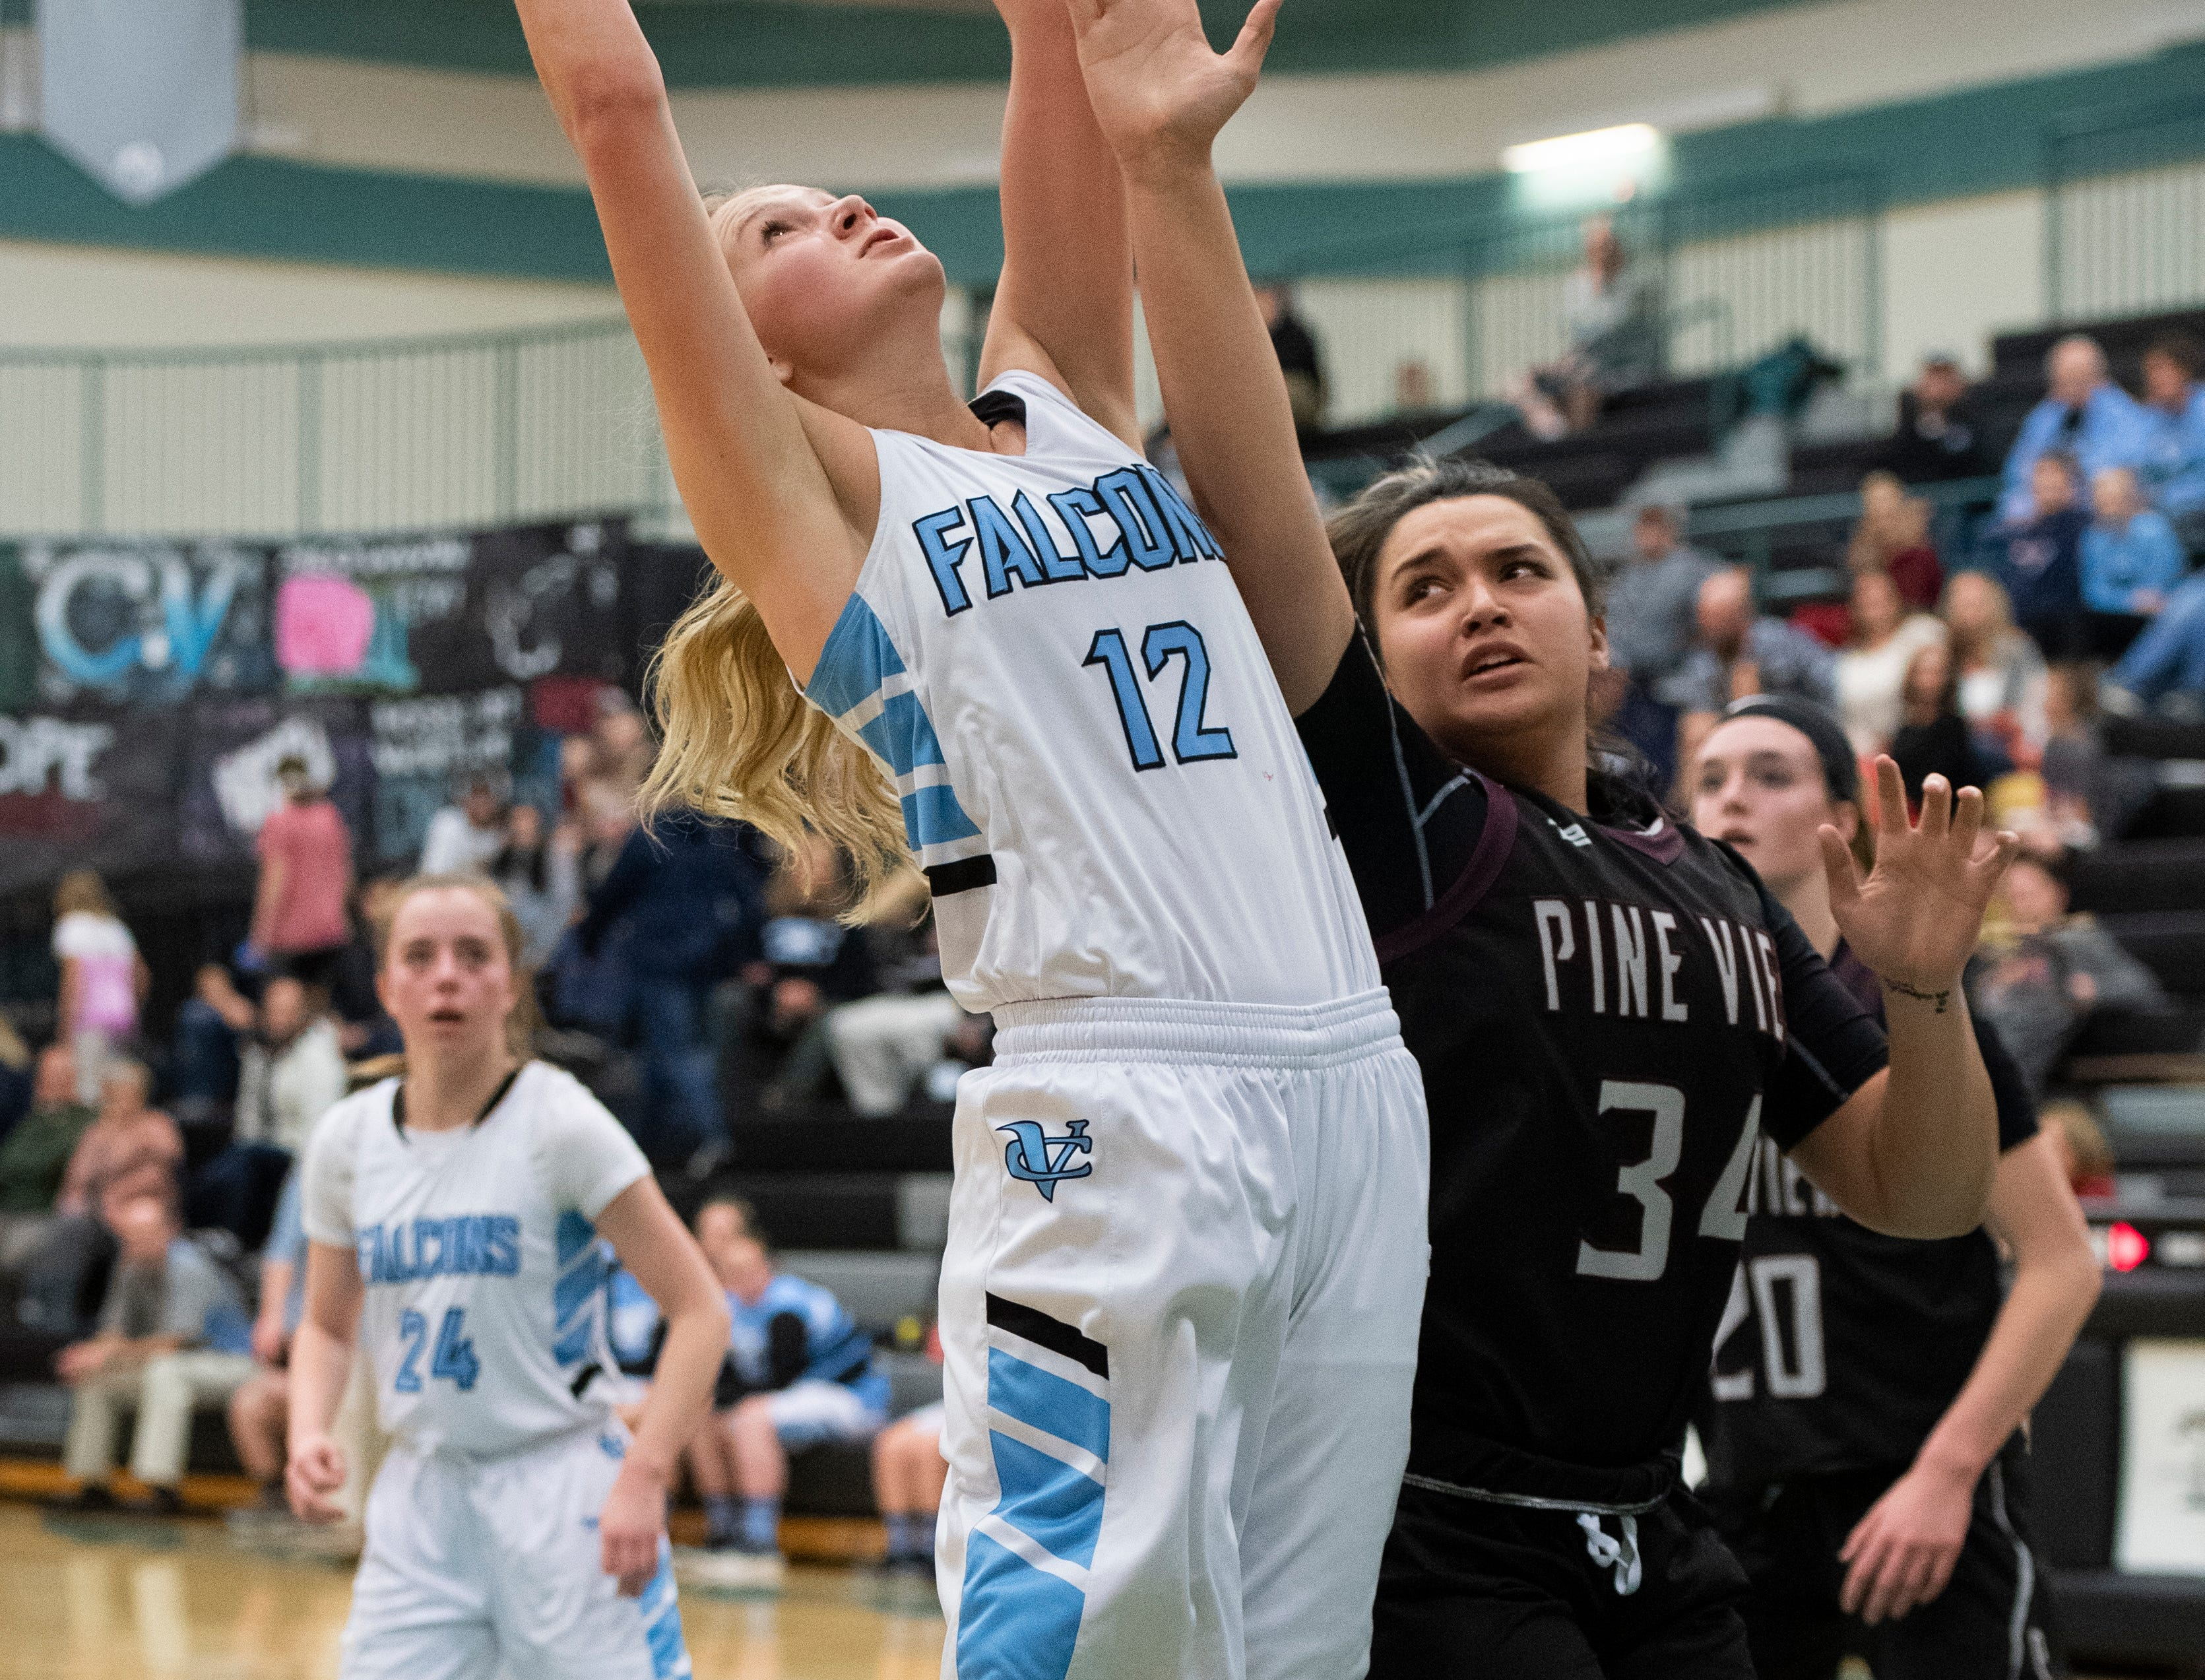 Canyon View High School freshman Harlee Nicoll (12) grabs an offensive rebound against Pine View at CVHS Tuesday, January 15, 2019. The CVHS Falcons won, 48-46.